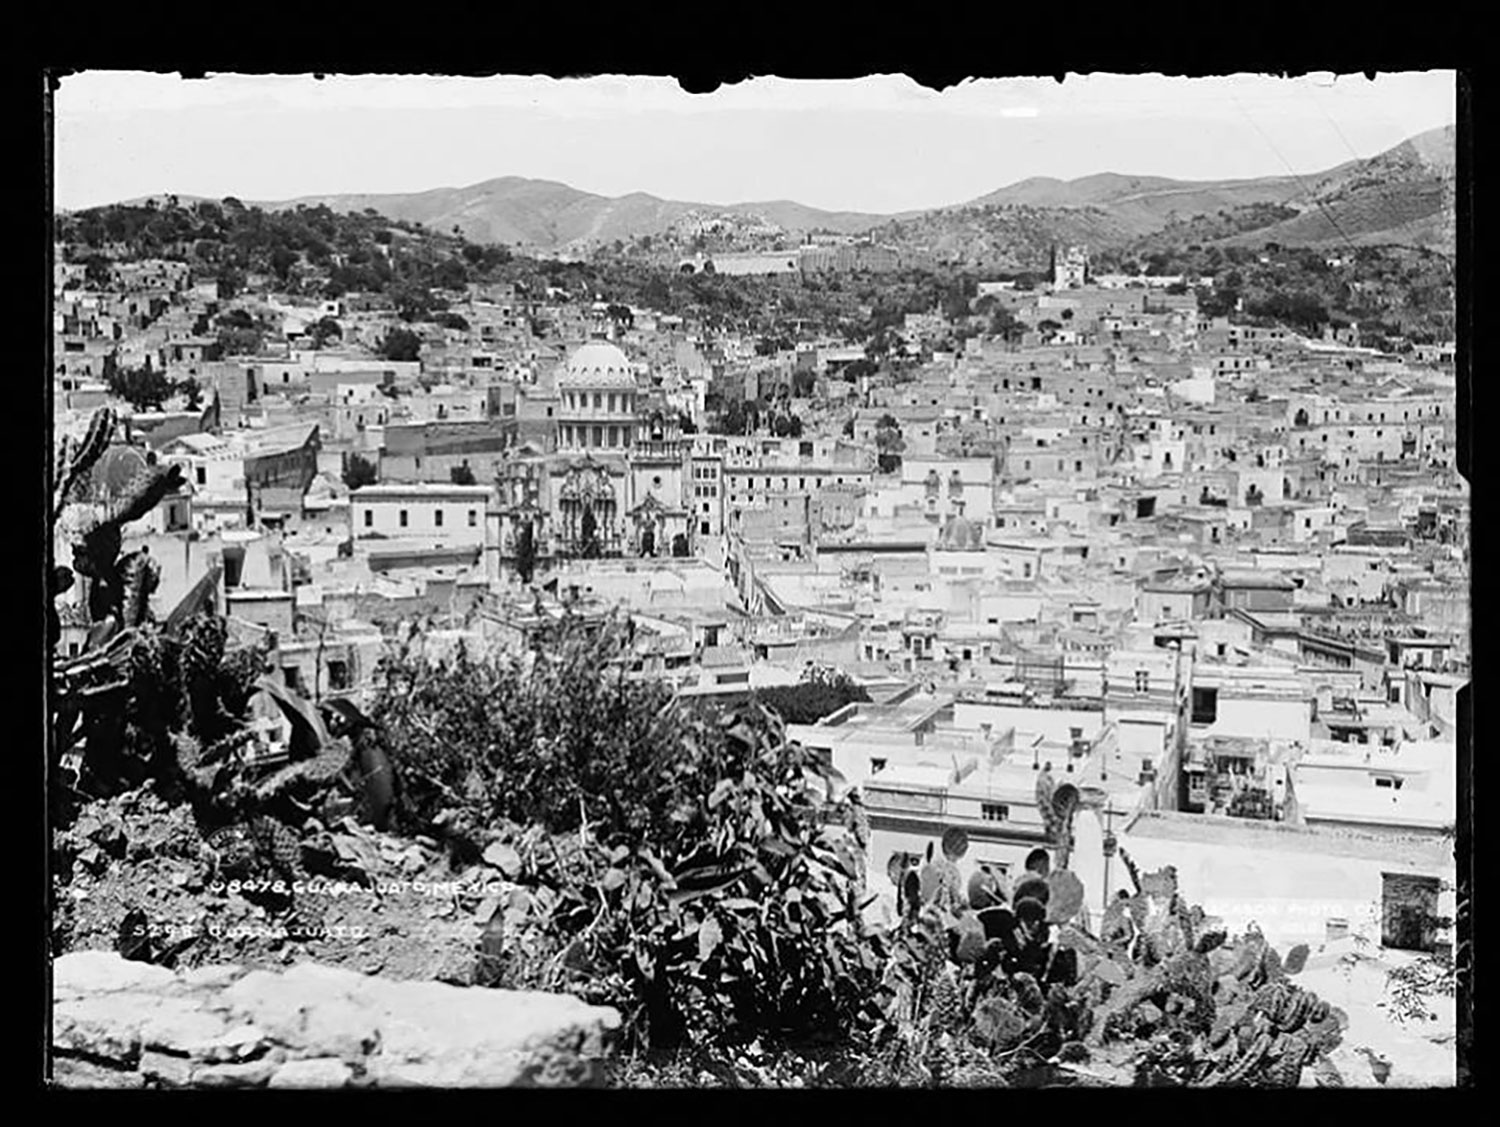 The city in 1890 by W.H. Jackson:  cazadordementes.tumblr.com .